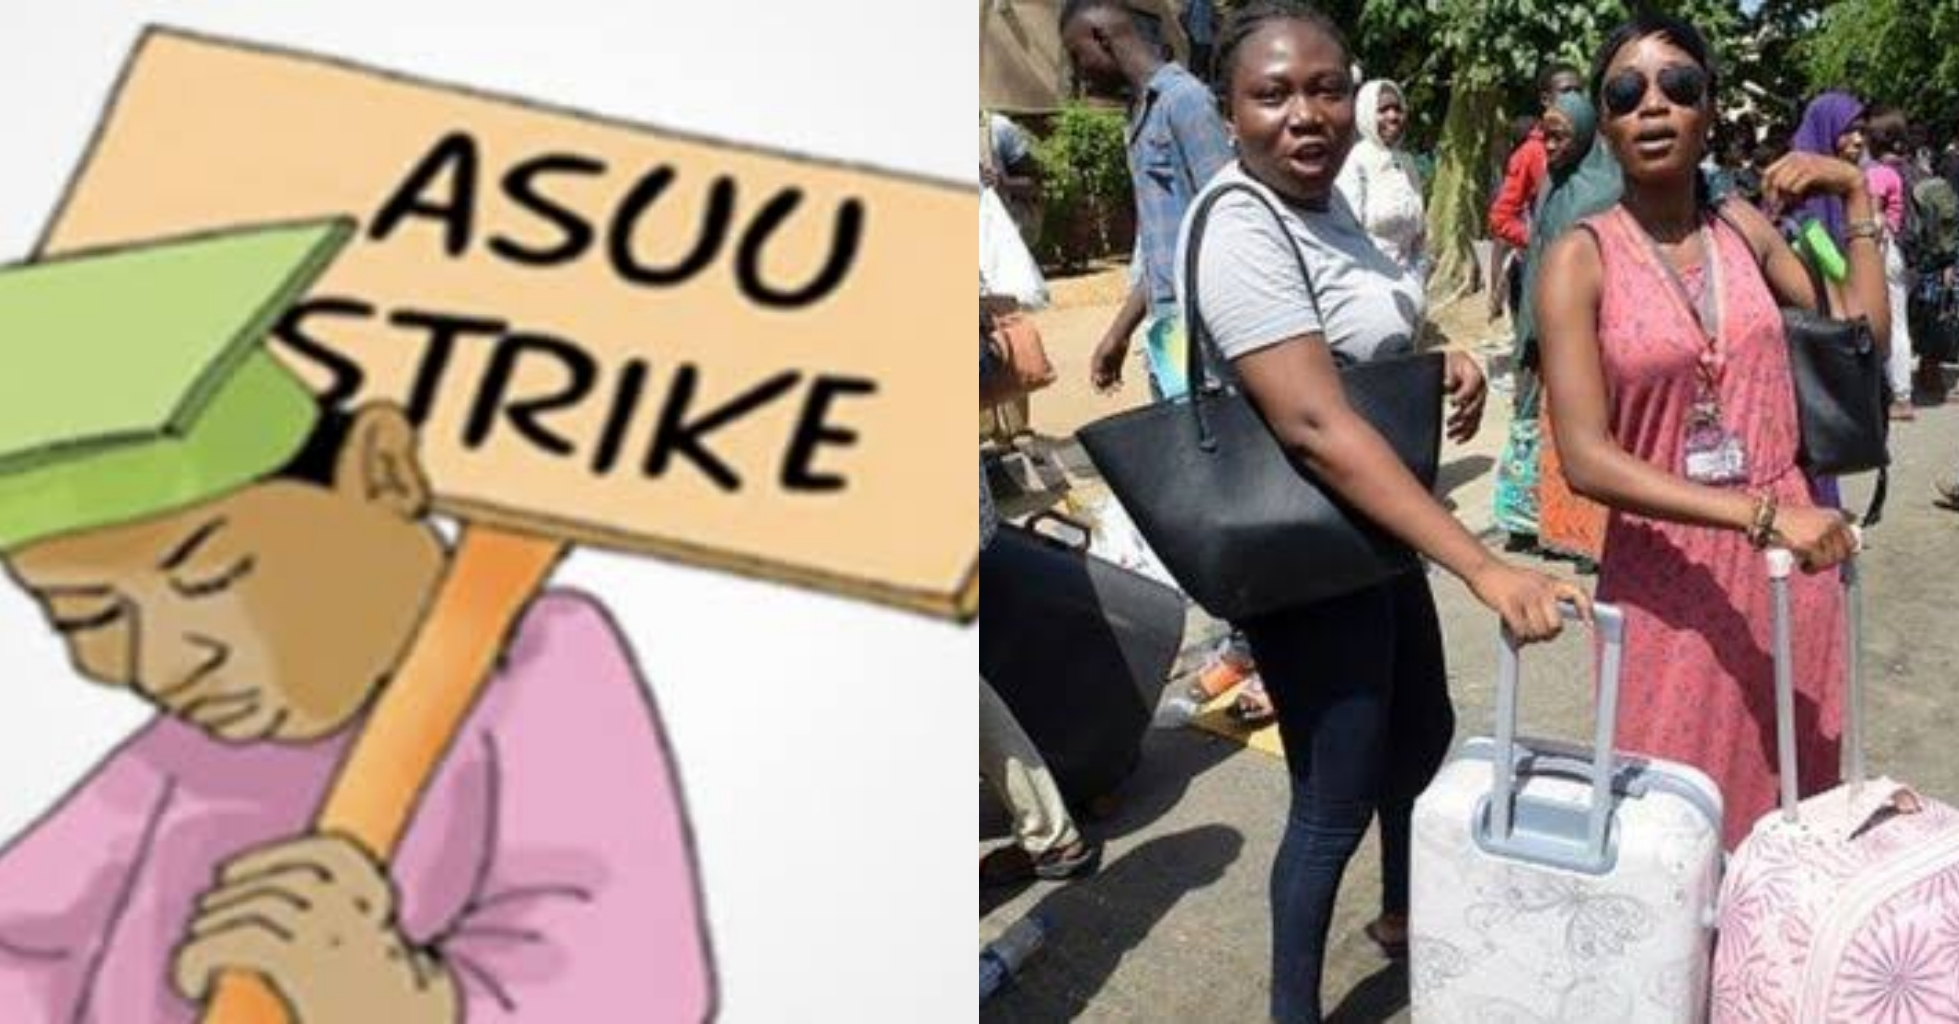 Correction: ASUU Did Not Ask Nigerian Students To Prepare For Resumption